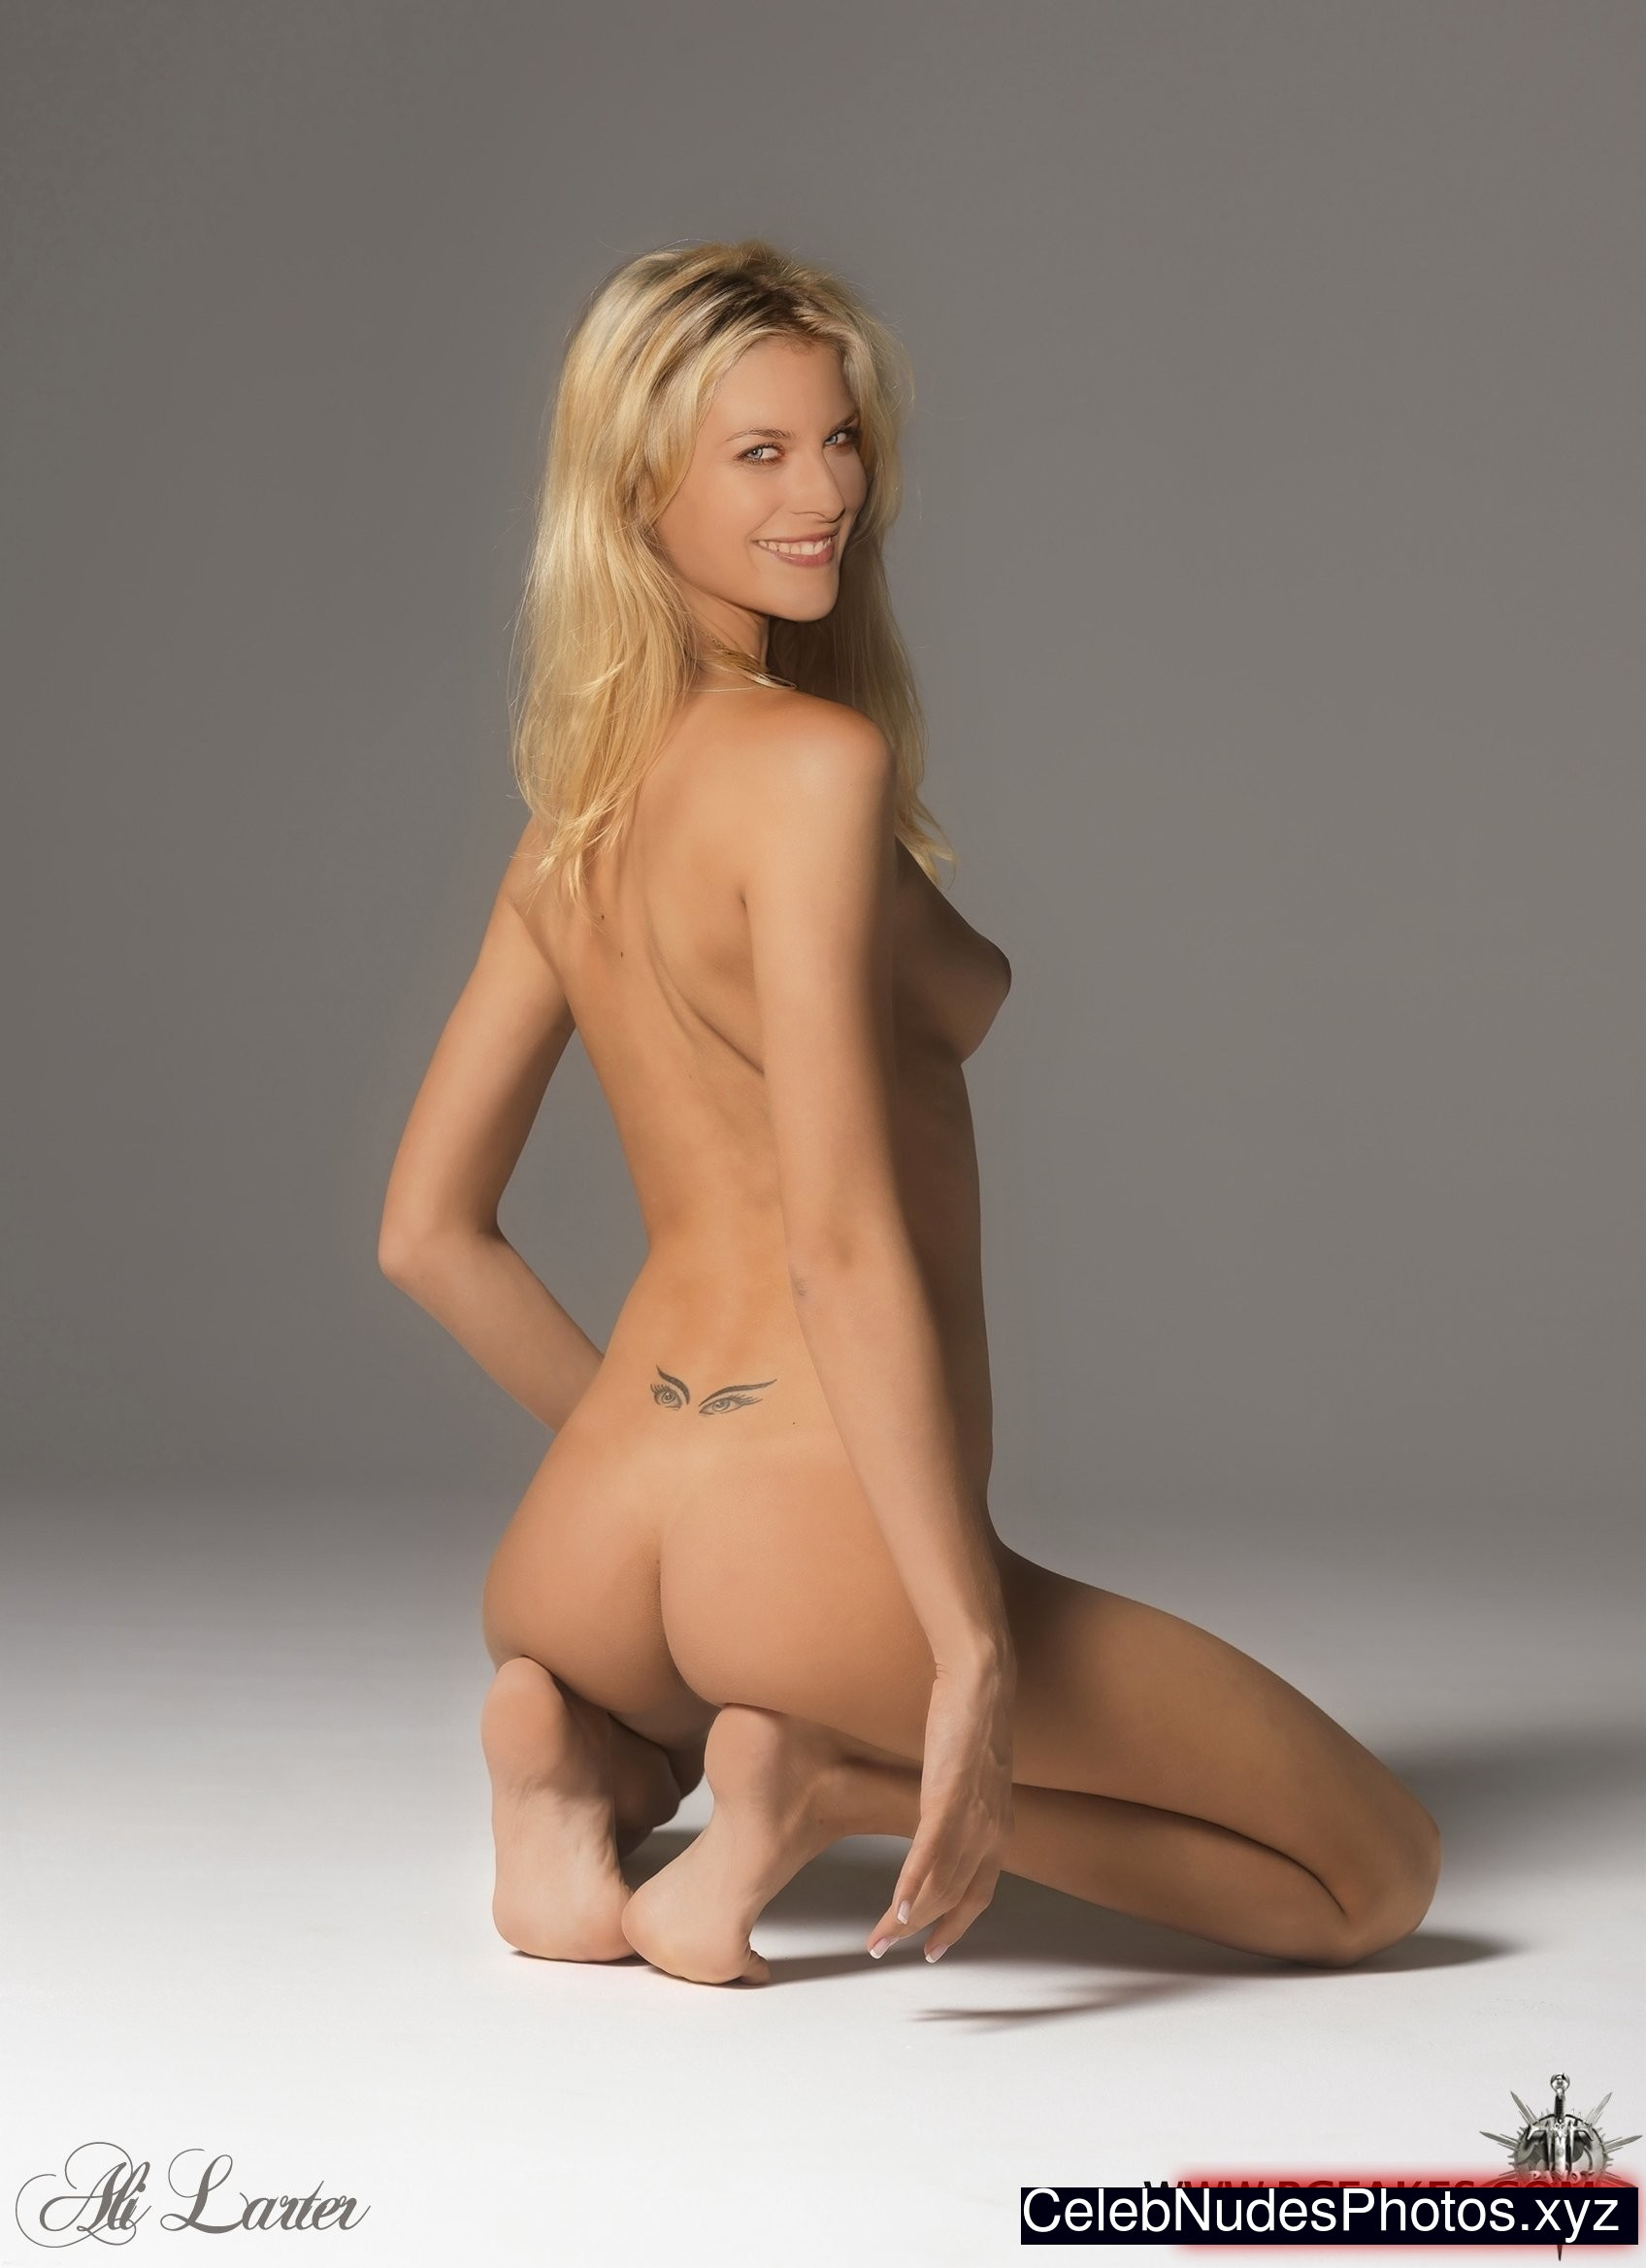 free fake nude celebrity picture gallery